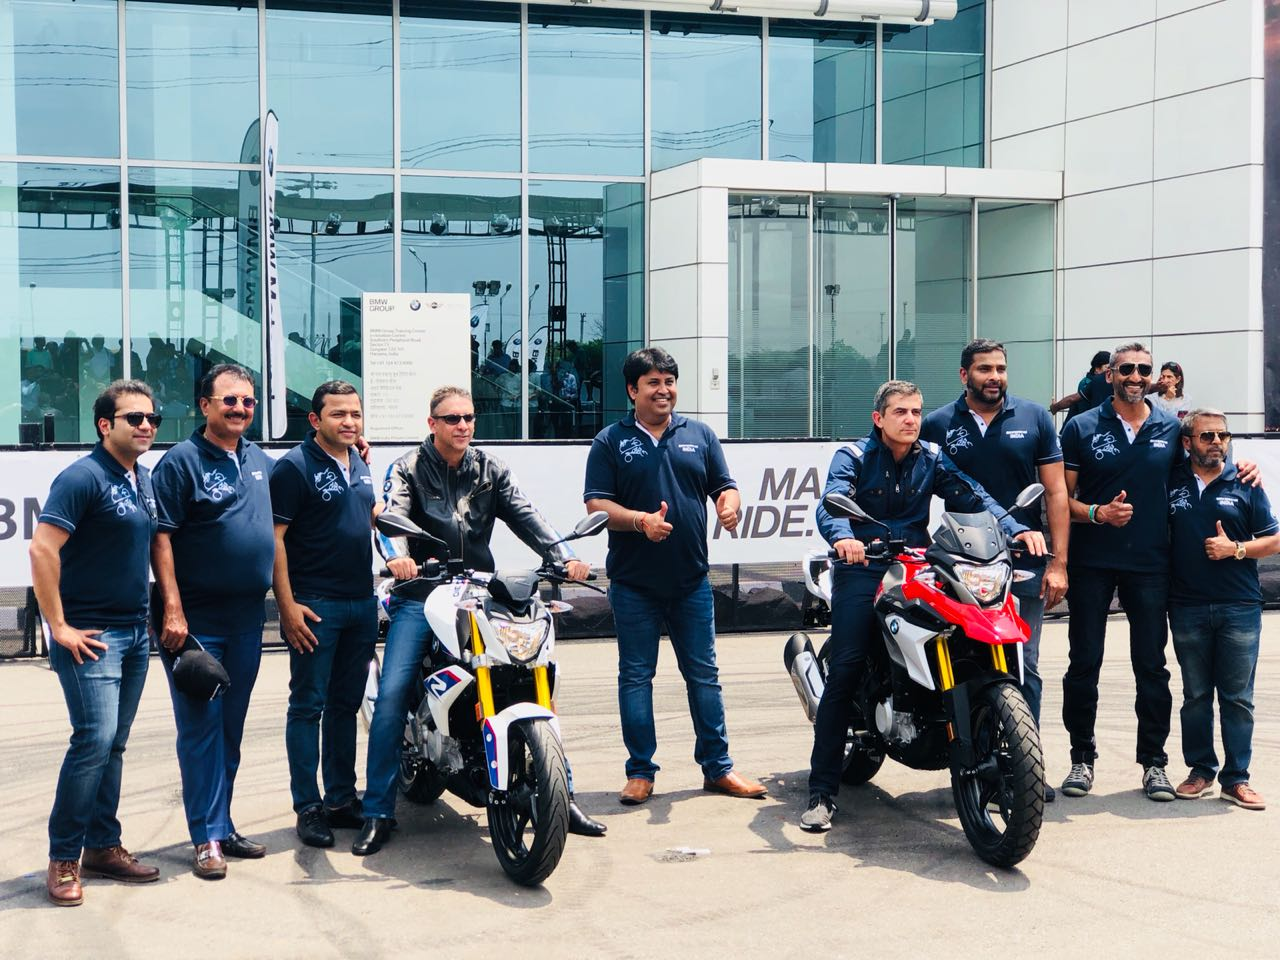 "<p><a href=""http://overdrive.in/news-cars-auto/official-bmw-motorrad-india-launches-g-310-r-and-g-310-gs-motorcycles-at-rs-2-99-and-rs-3-49-lakh/"">PRICES OUT: The G 310 R is priced at Rs 2.99 lakh and the G 310 GS will cost 3.49 lakh. All prices ex-showroom.</a></p>"